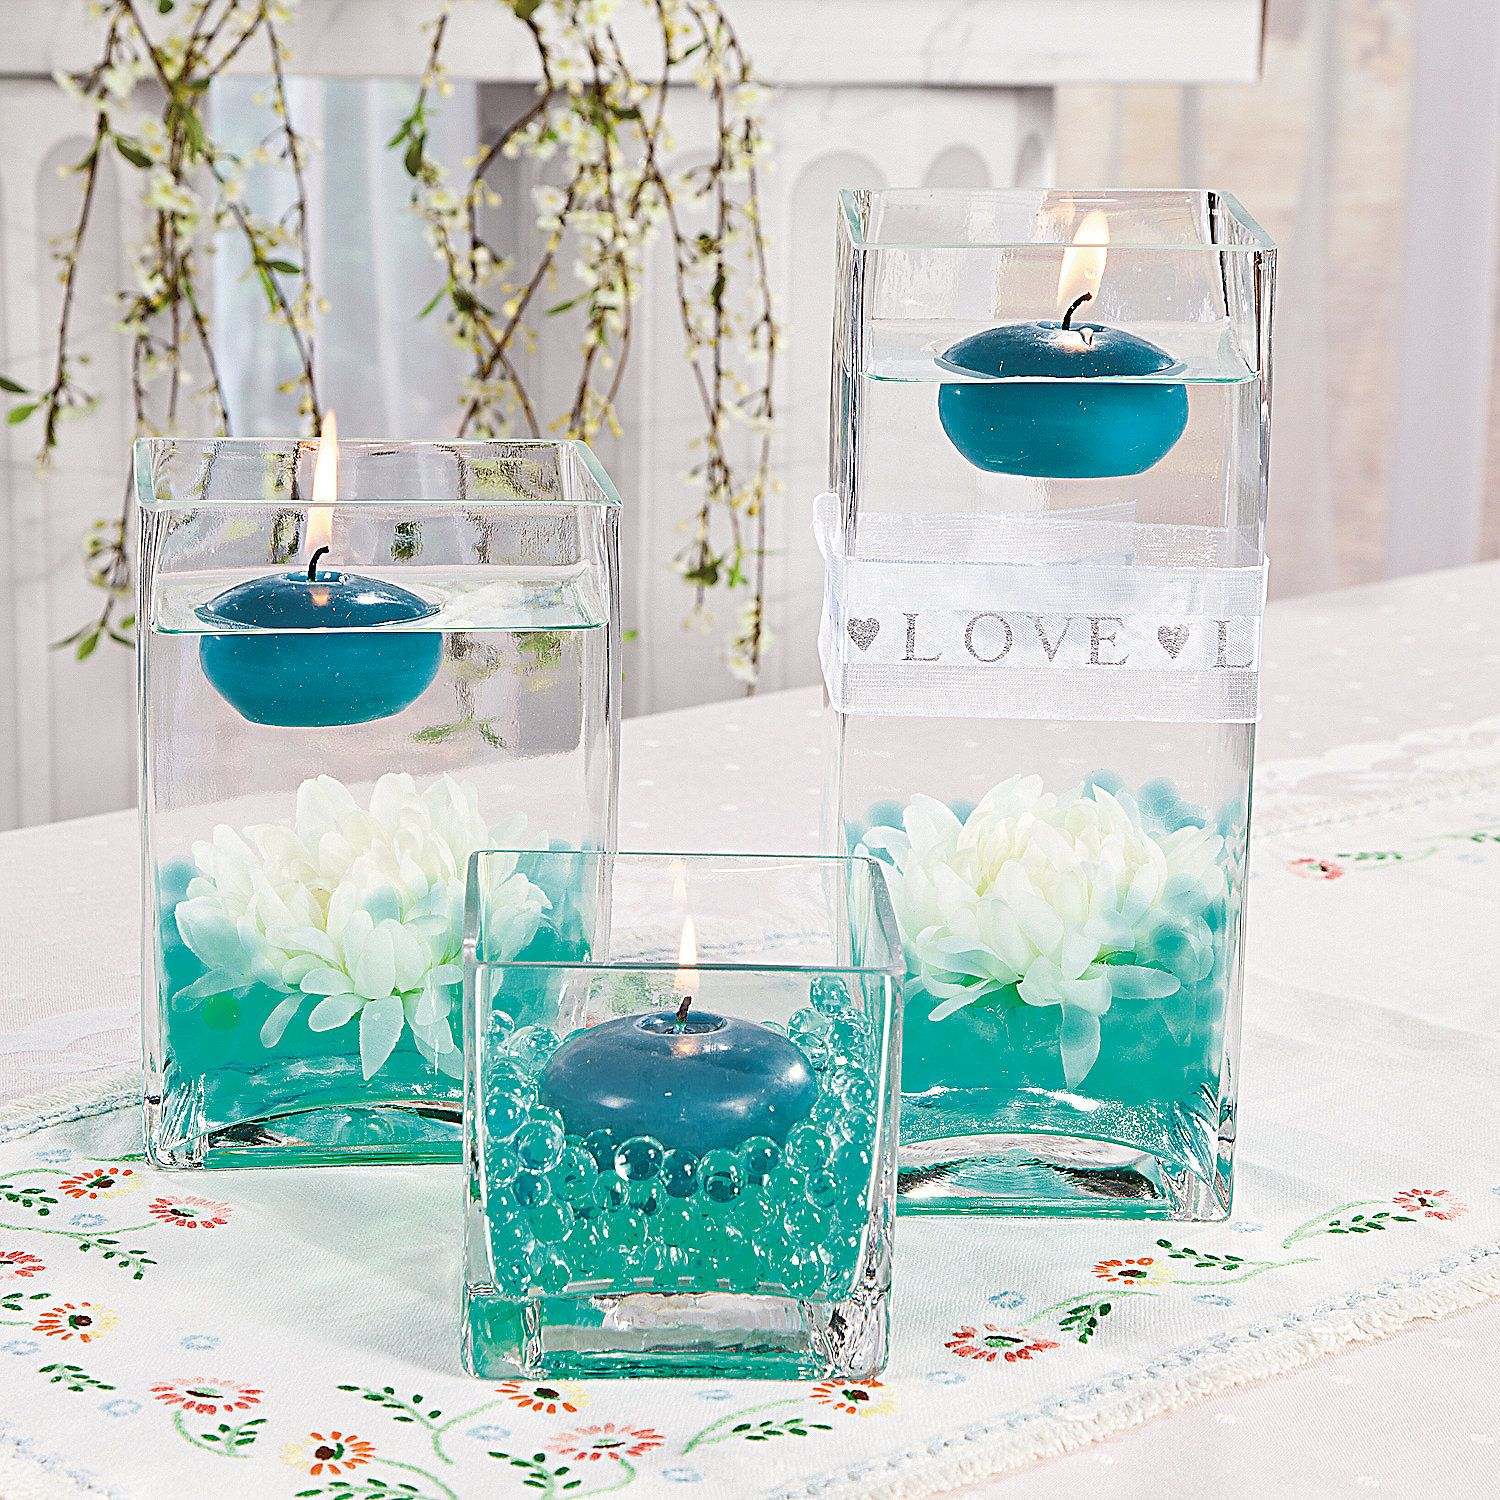 16 Stunning Floating Wedding Centerpiece Ideas: Floating Candle Centerpieces -Turquoise Water Beads $2.00